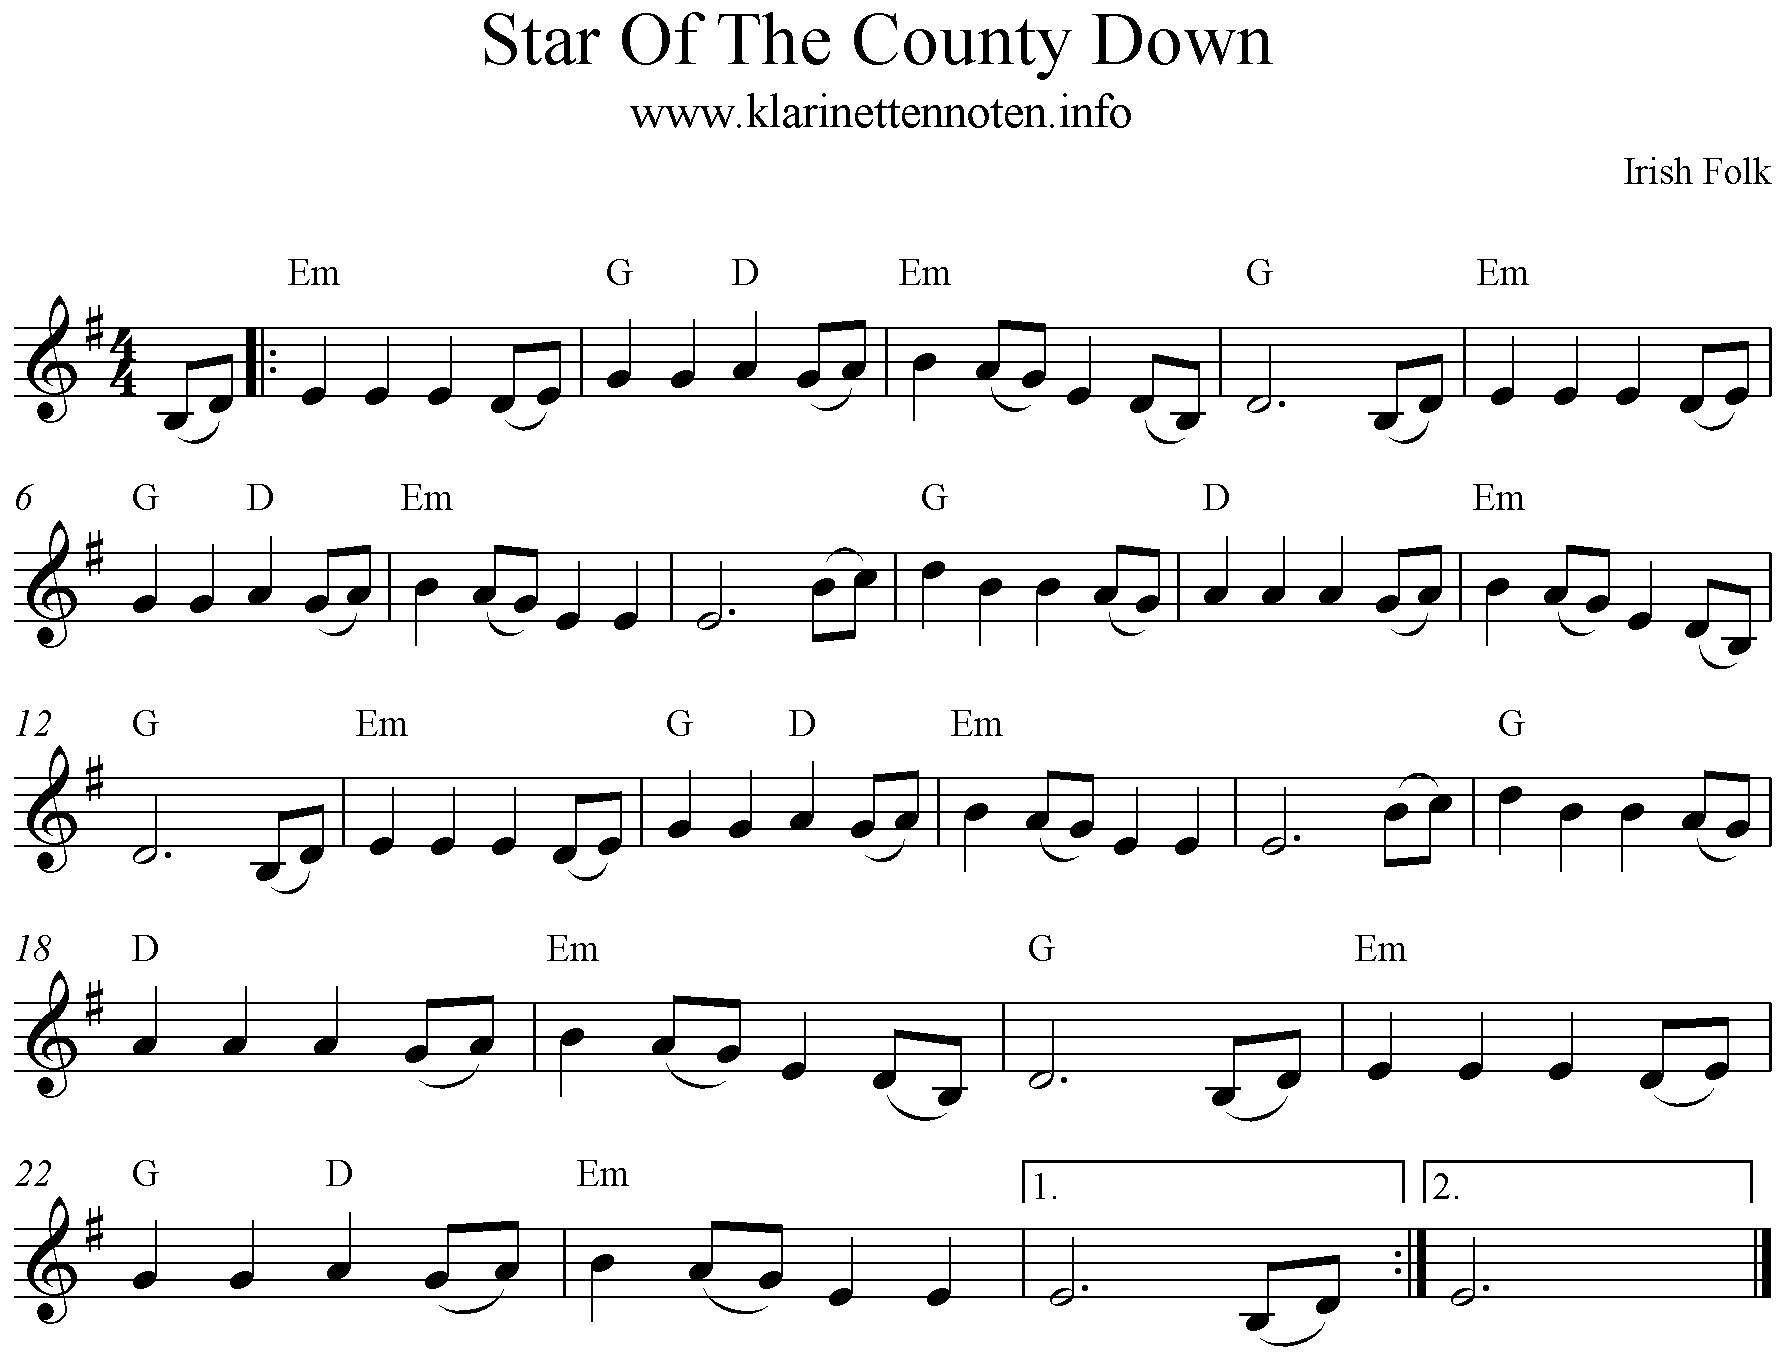 Noten Star of the County Down